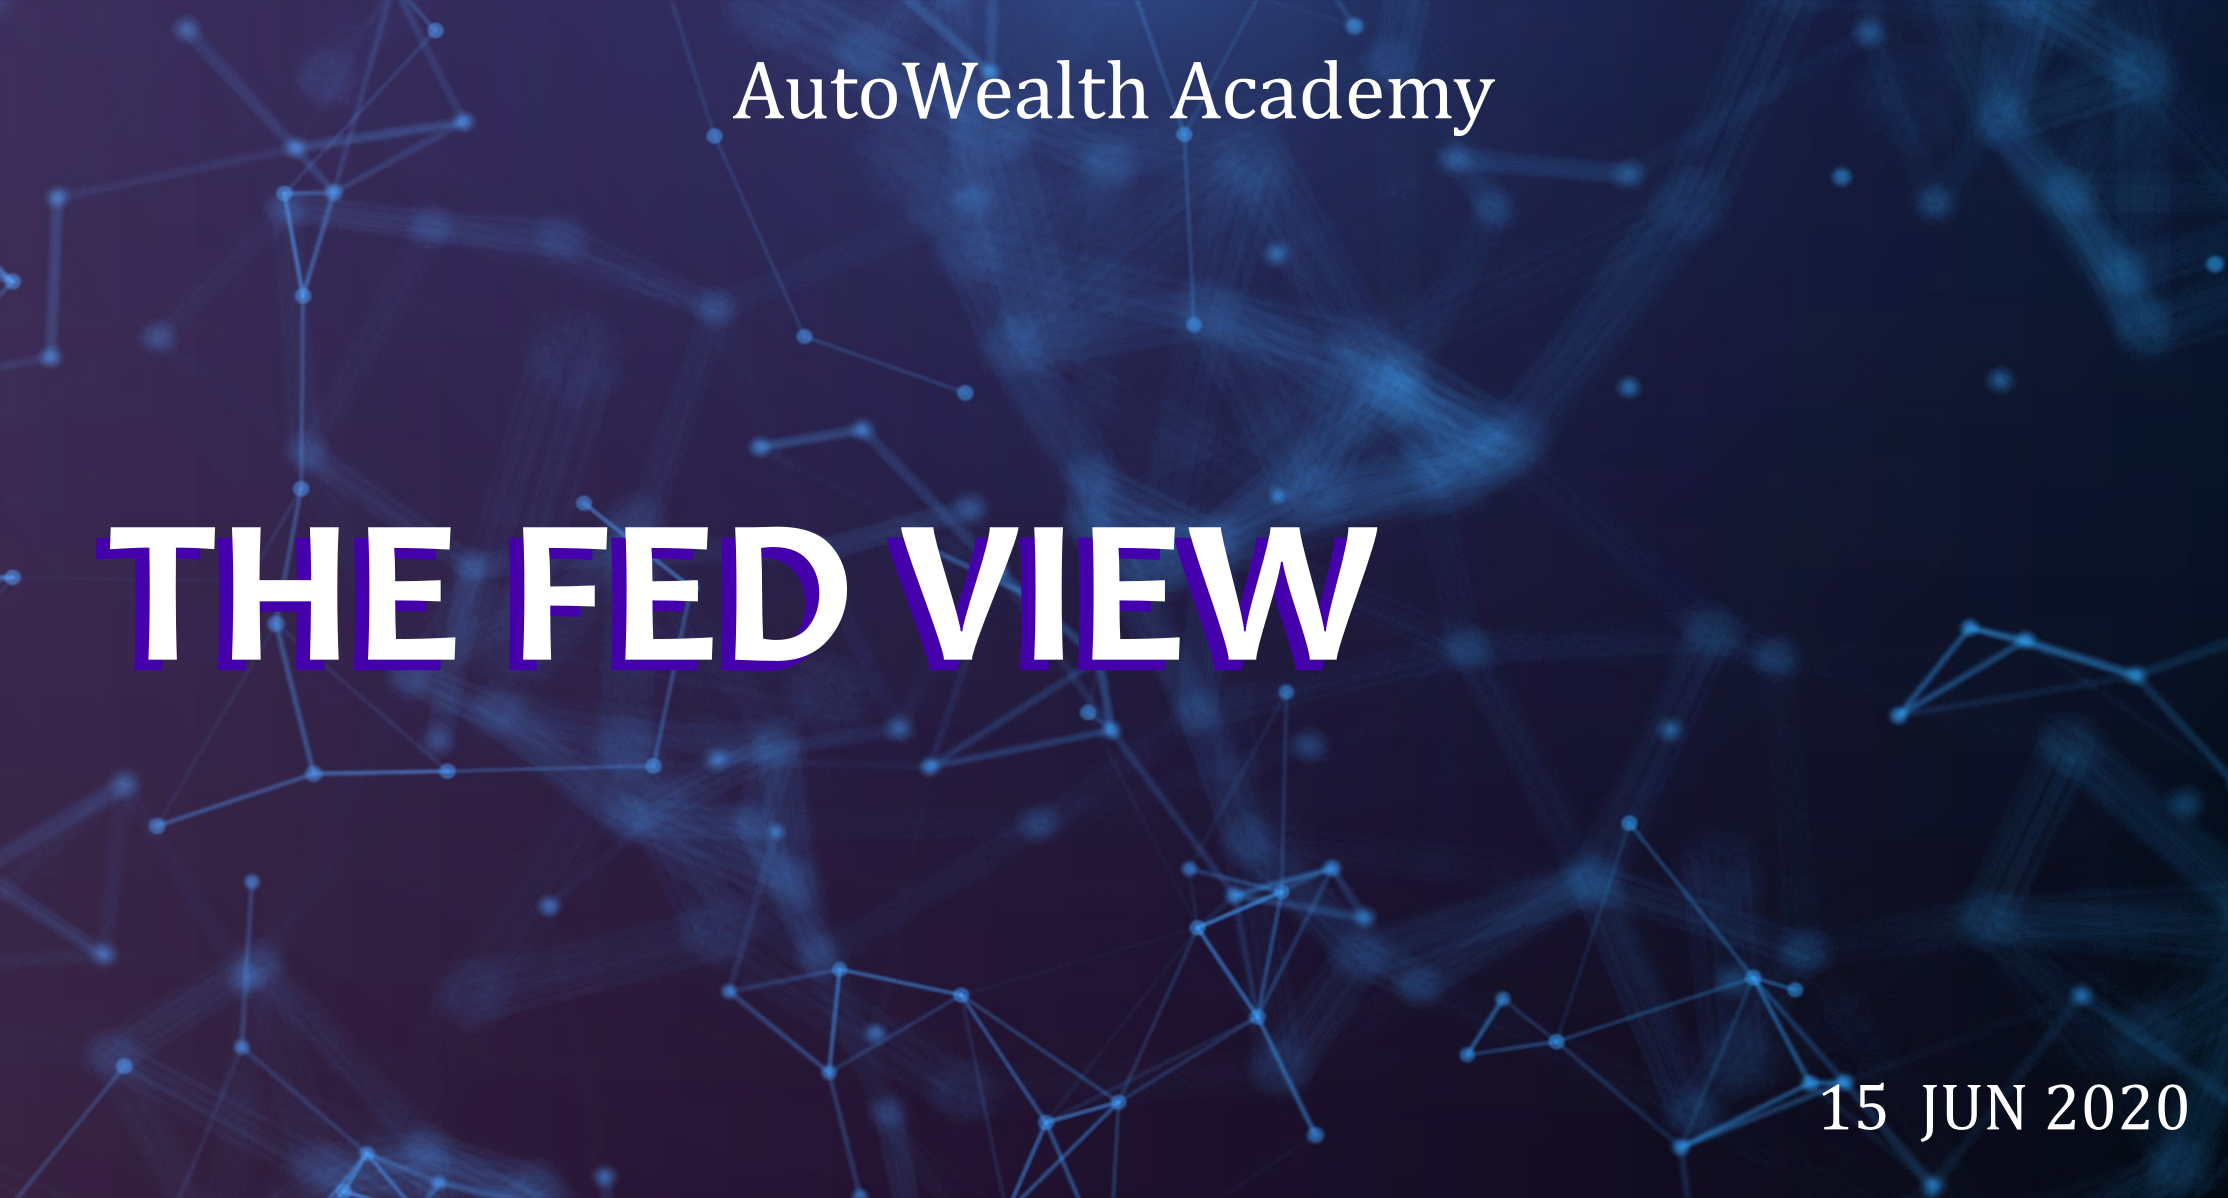 The Fed View